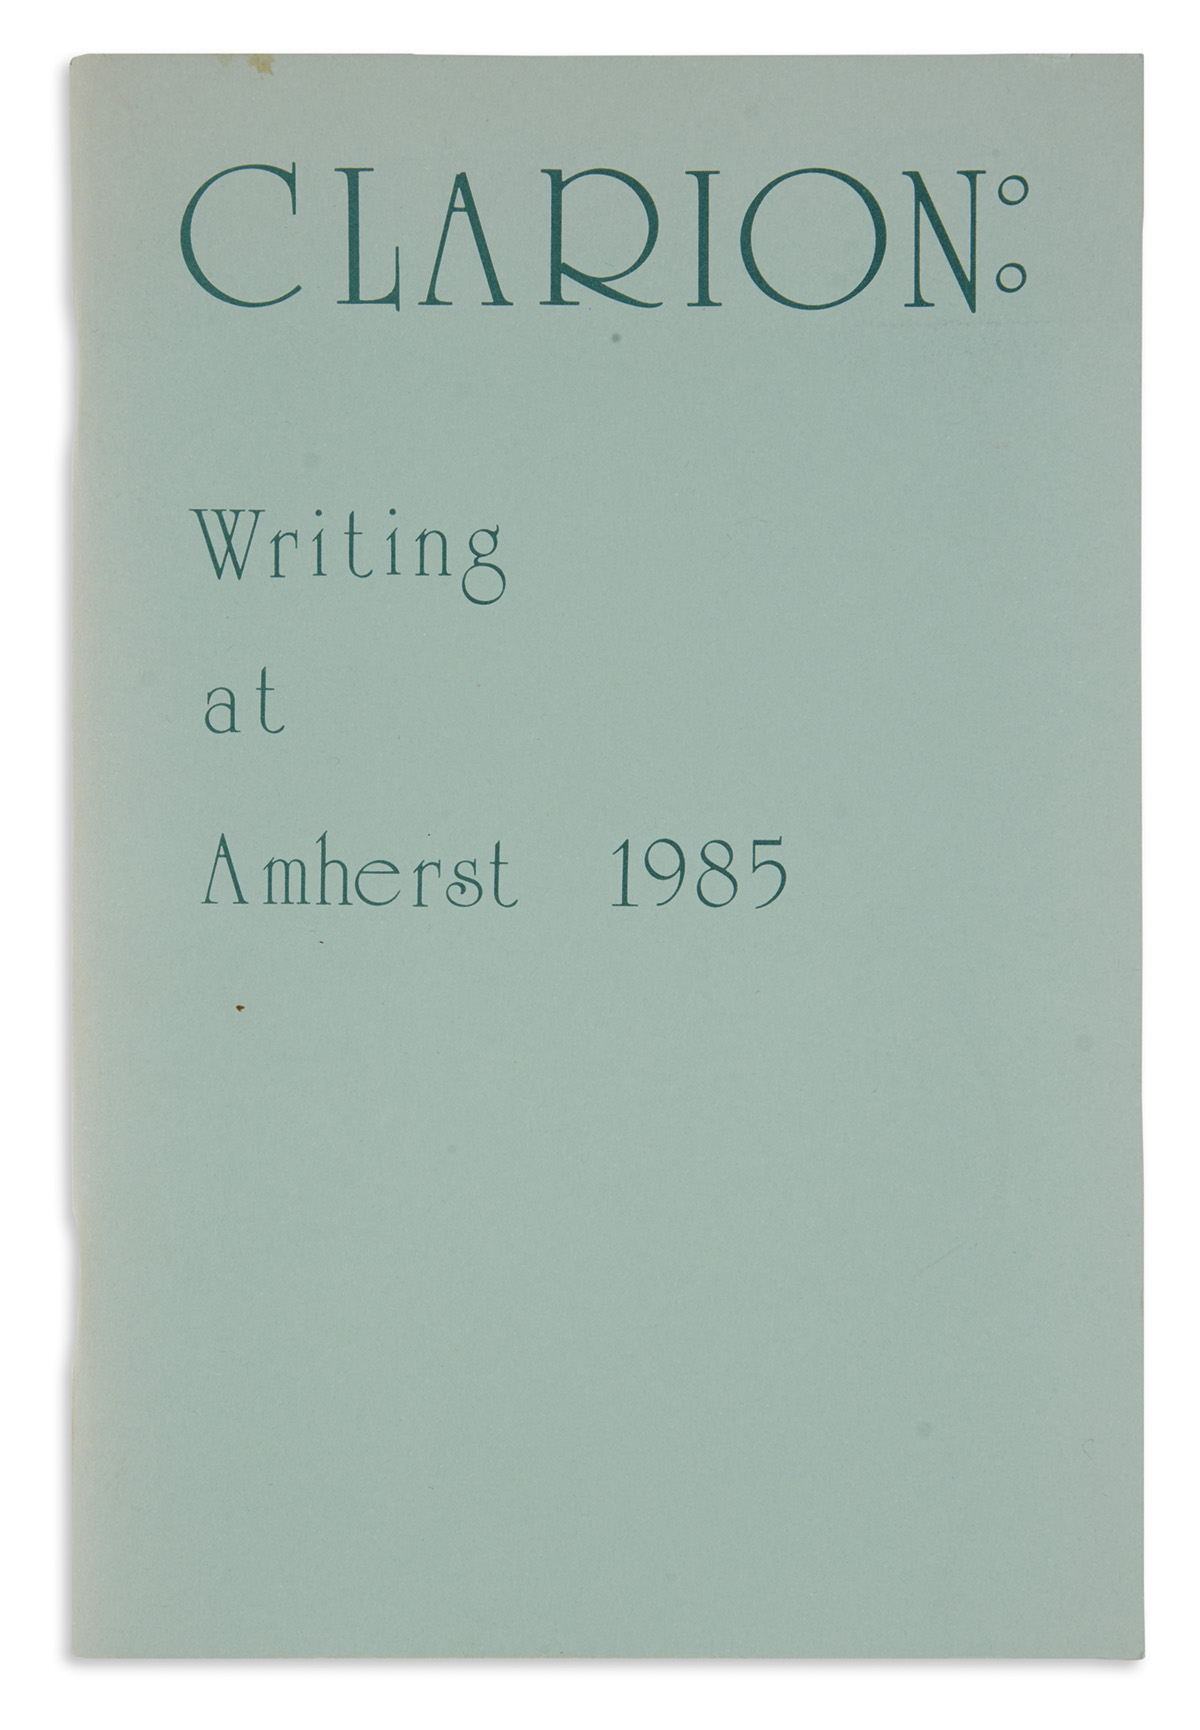 WALLACE-DAVID-FOSTER-Mr-Costigan-in-May-[in]-Clarion-Writing